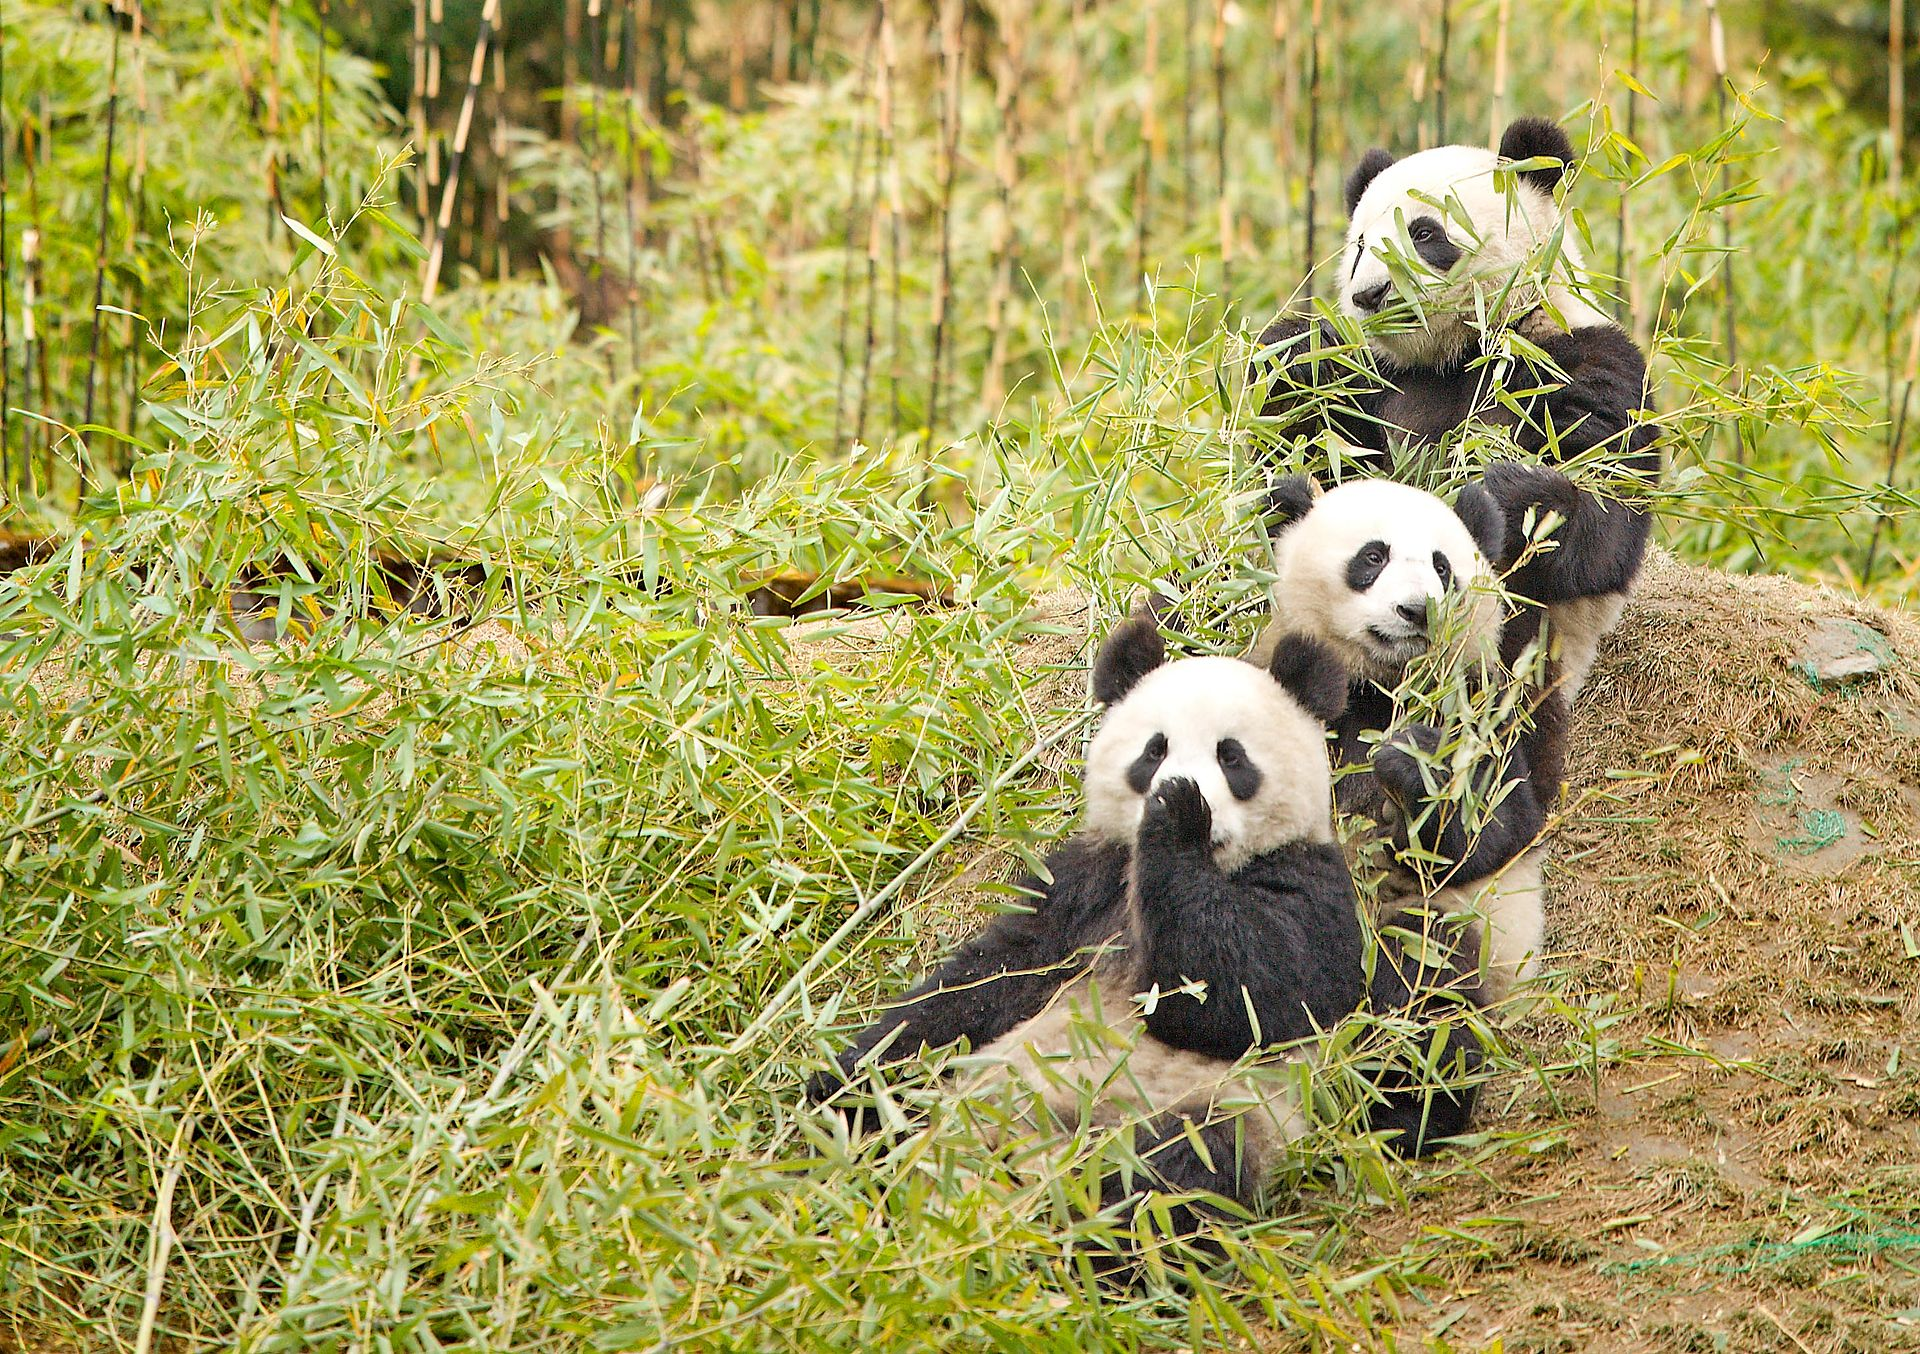 Here are some giant pandas snacking on bamboo.